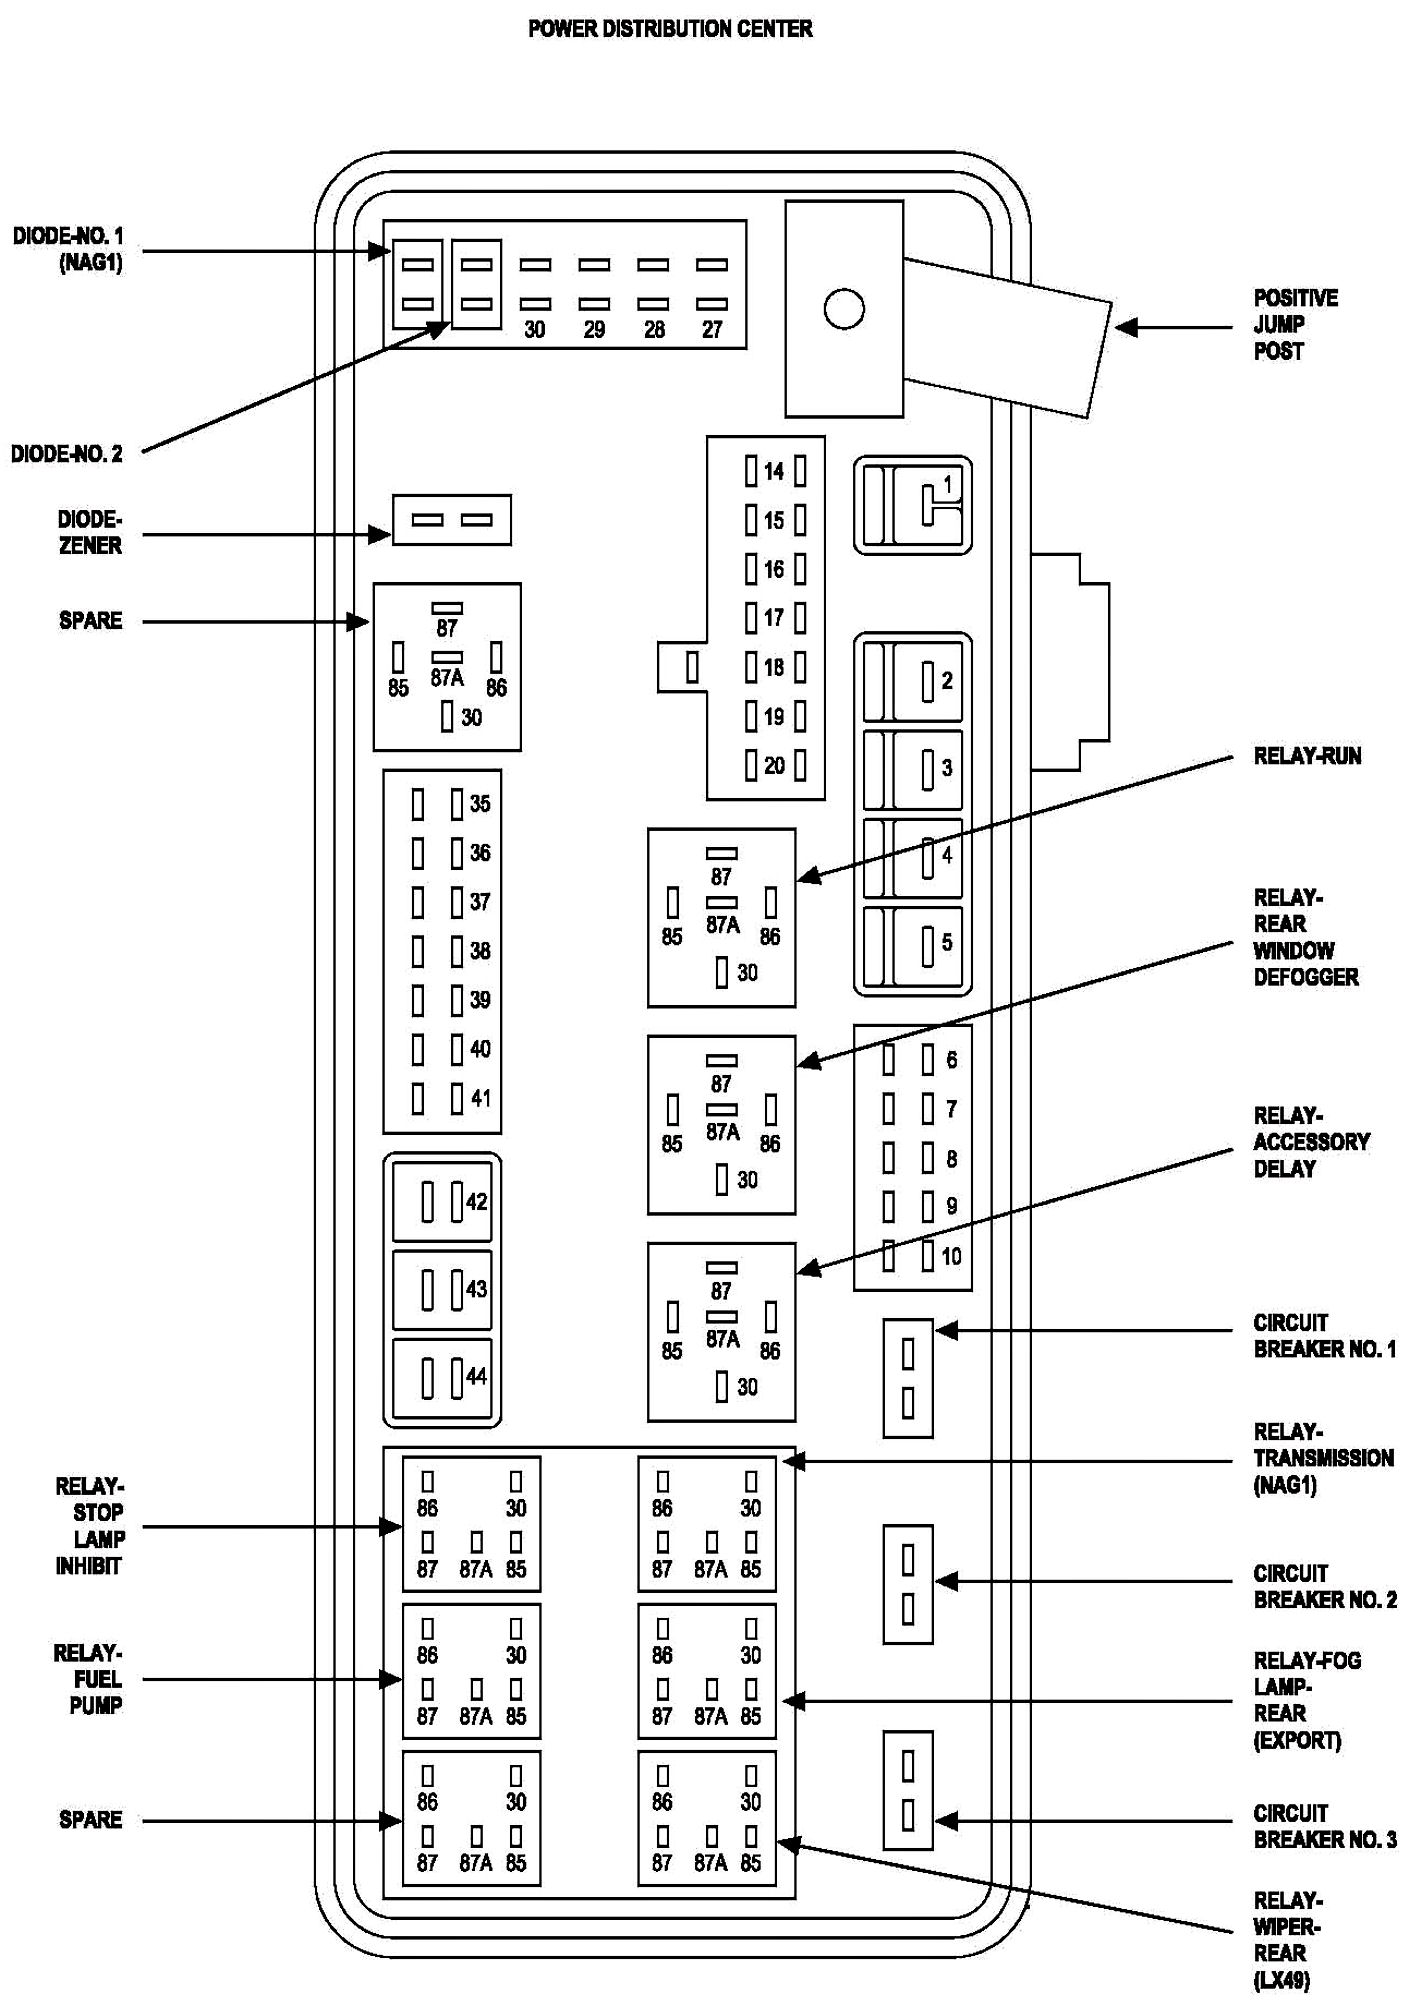 2007 Dodge Magnum Interior Fuse Box Diagram